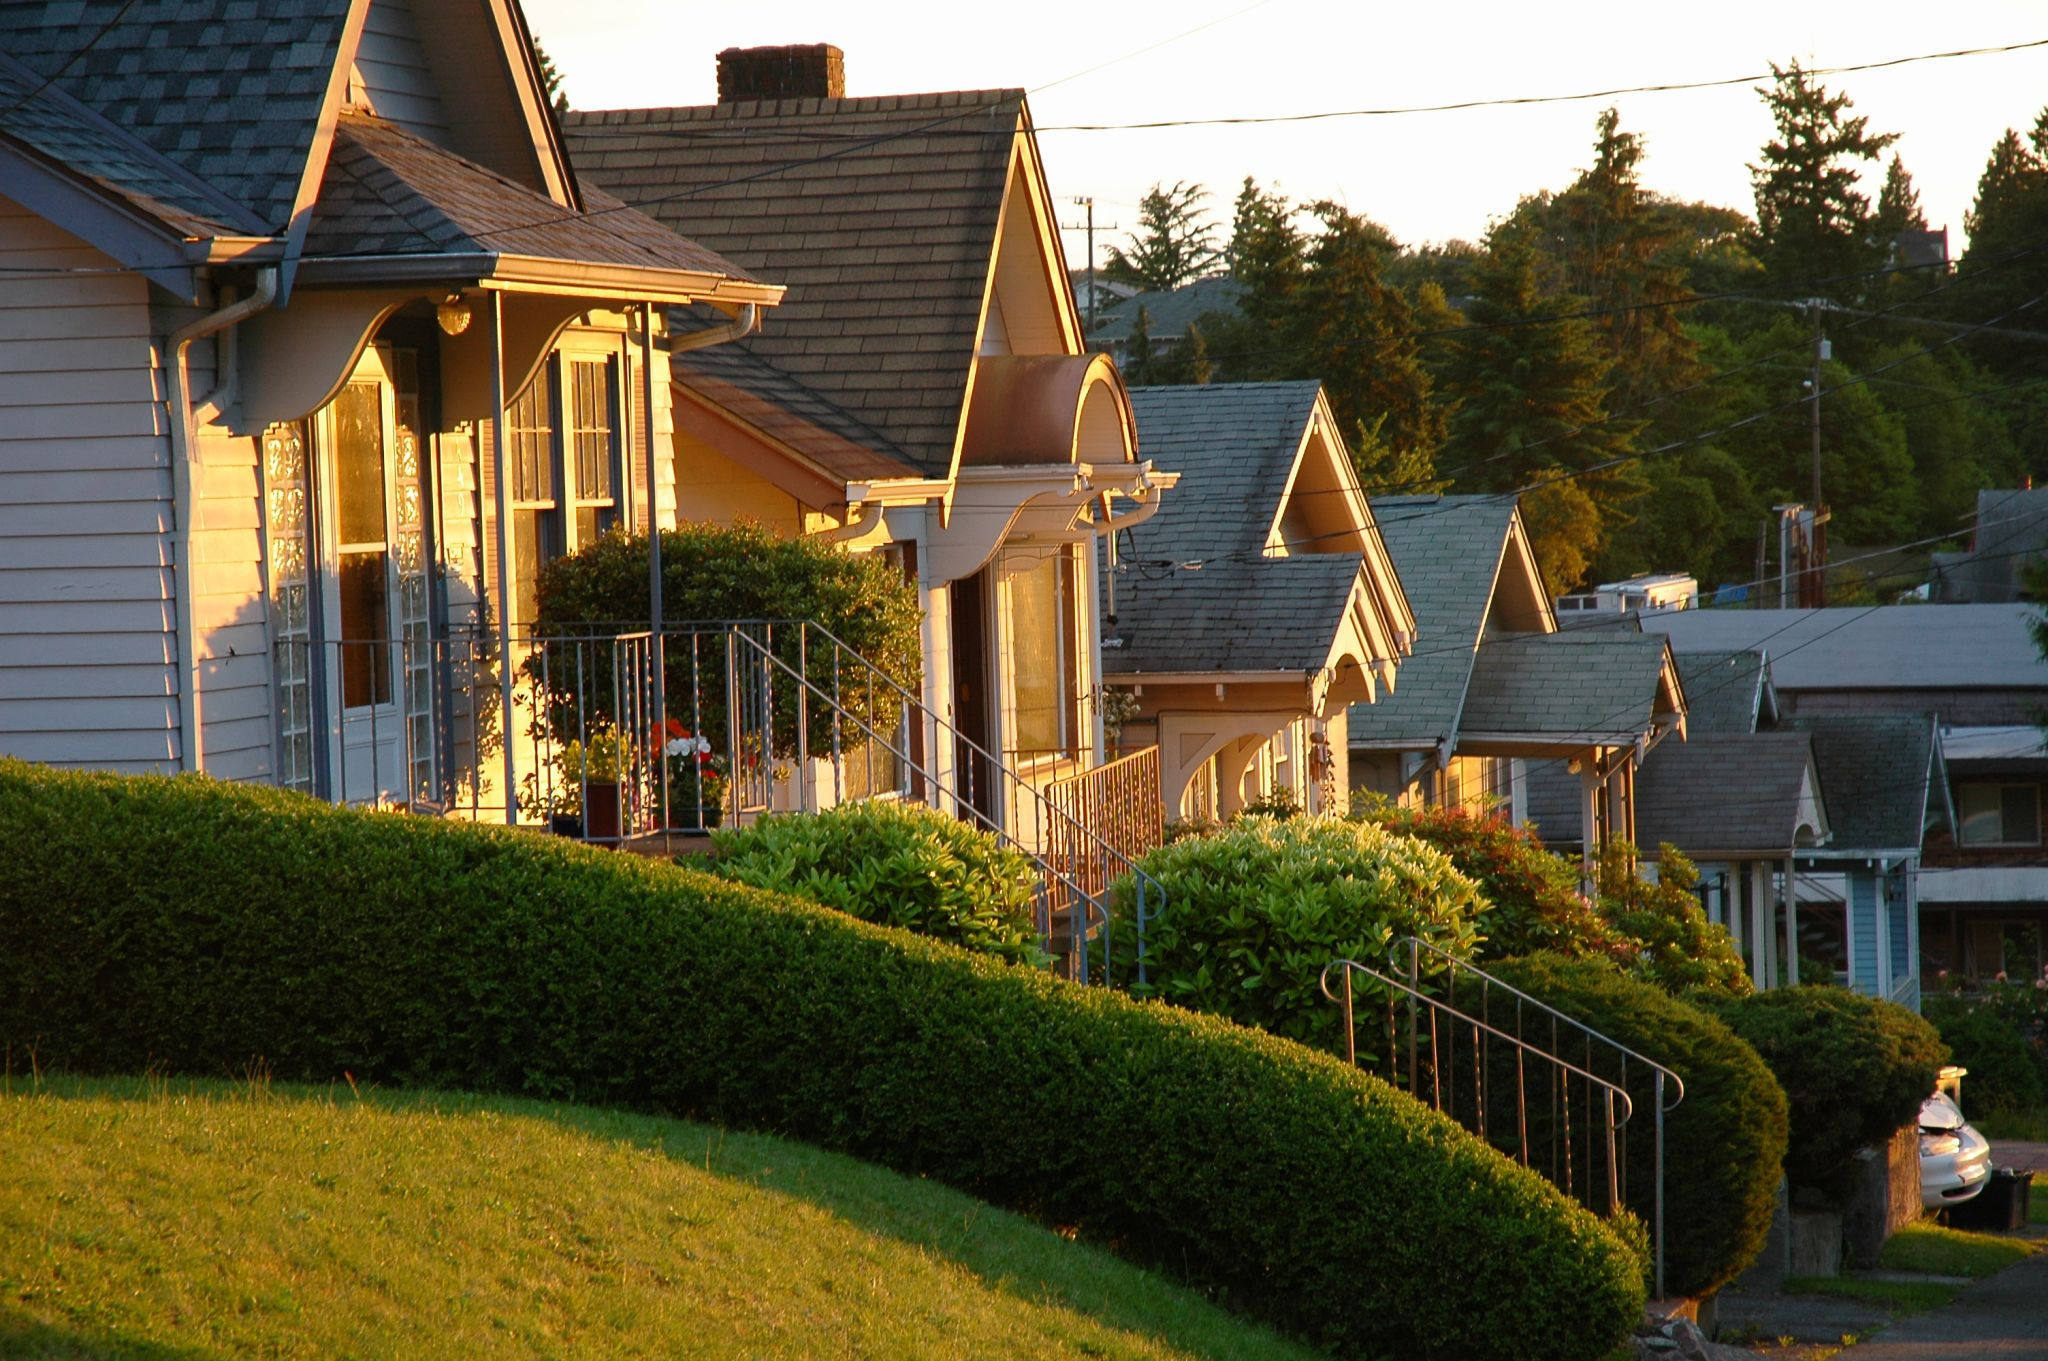 Study: Homes prices in Seattle are expected to rise 18% over the next year